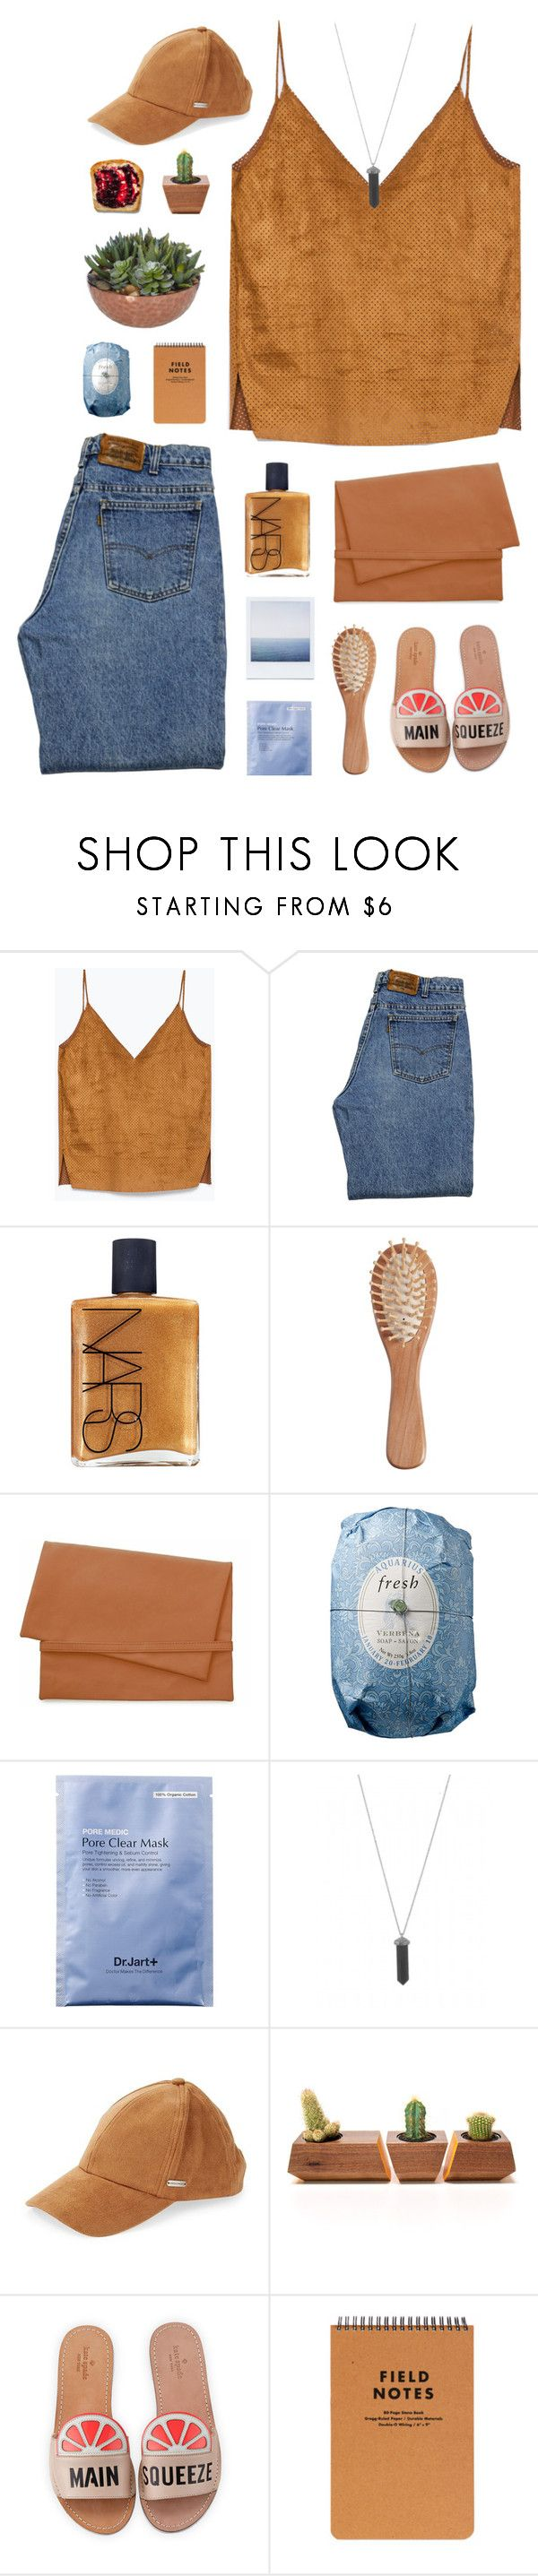 """It's my 19th birthday!"" by nauditaolivia ❤ liked on Polyvore featuring Levi's, NARS Cosmetics, The Unbranded Brand, Cheap Monday, Fresh, Karen Kane, Steve Madden, Dot & Bo and Kate Spade"